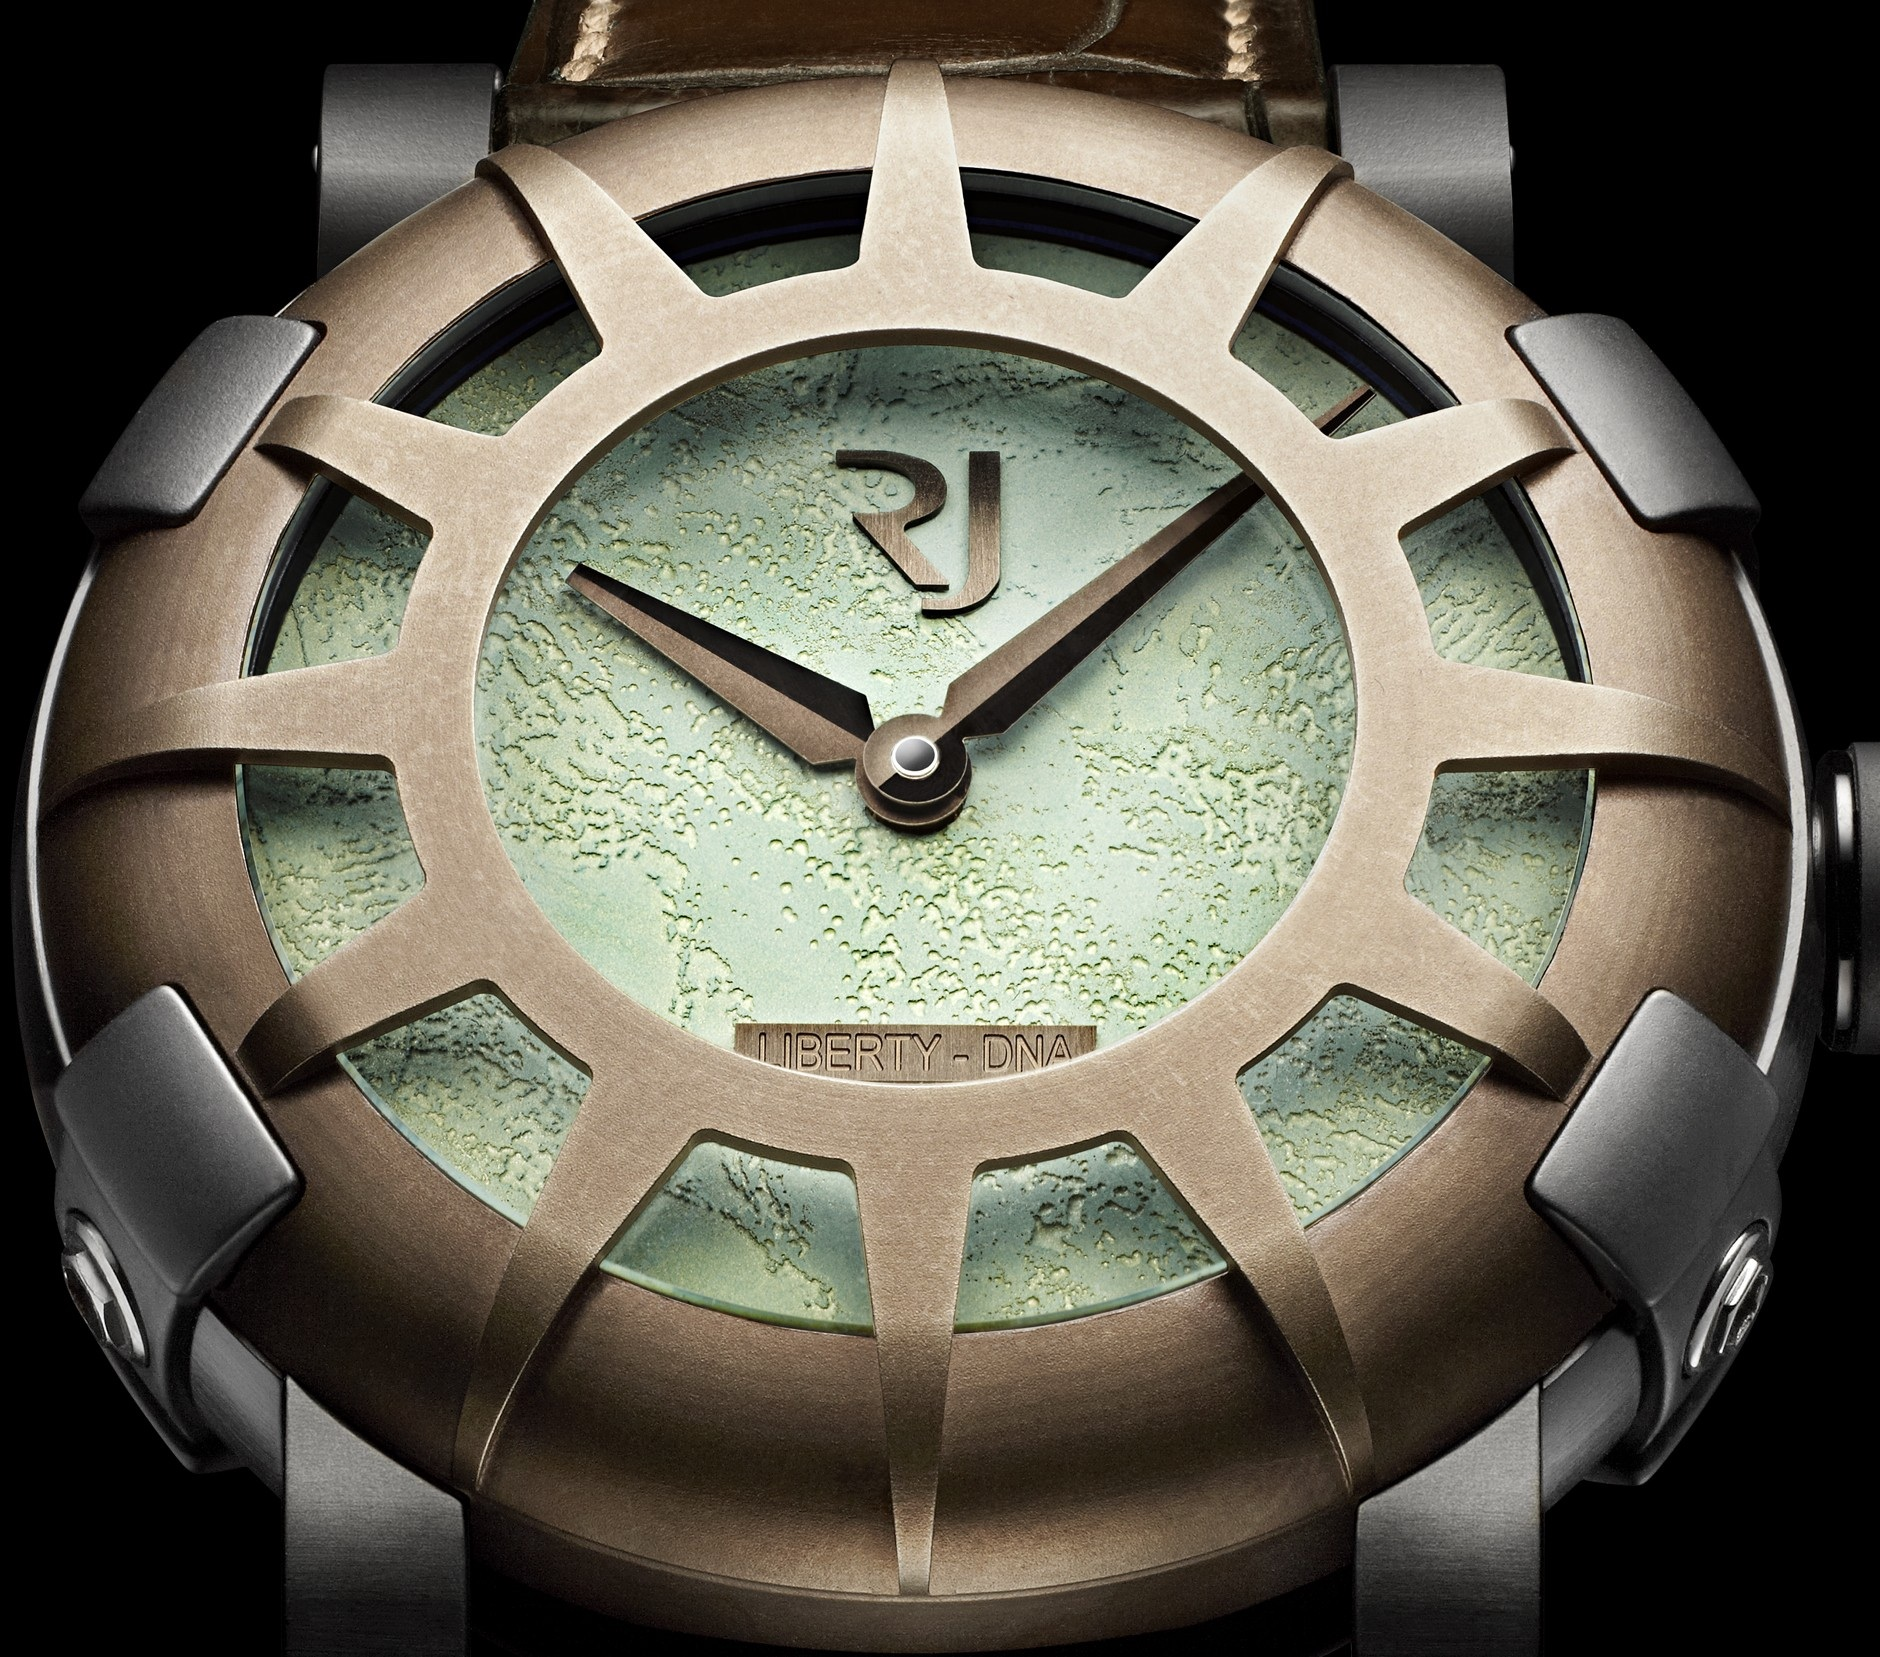 Detail of the 2012 RJ-Romain Jerome Liberty-DNA